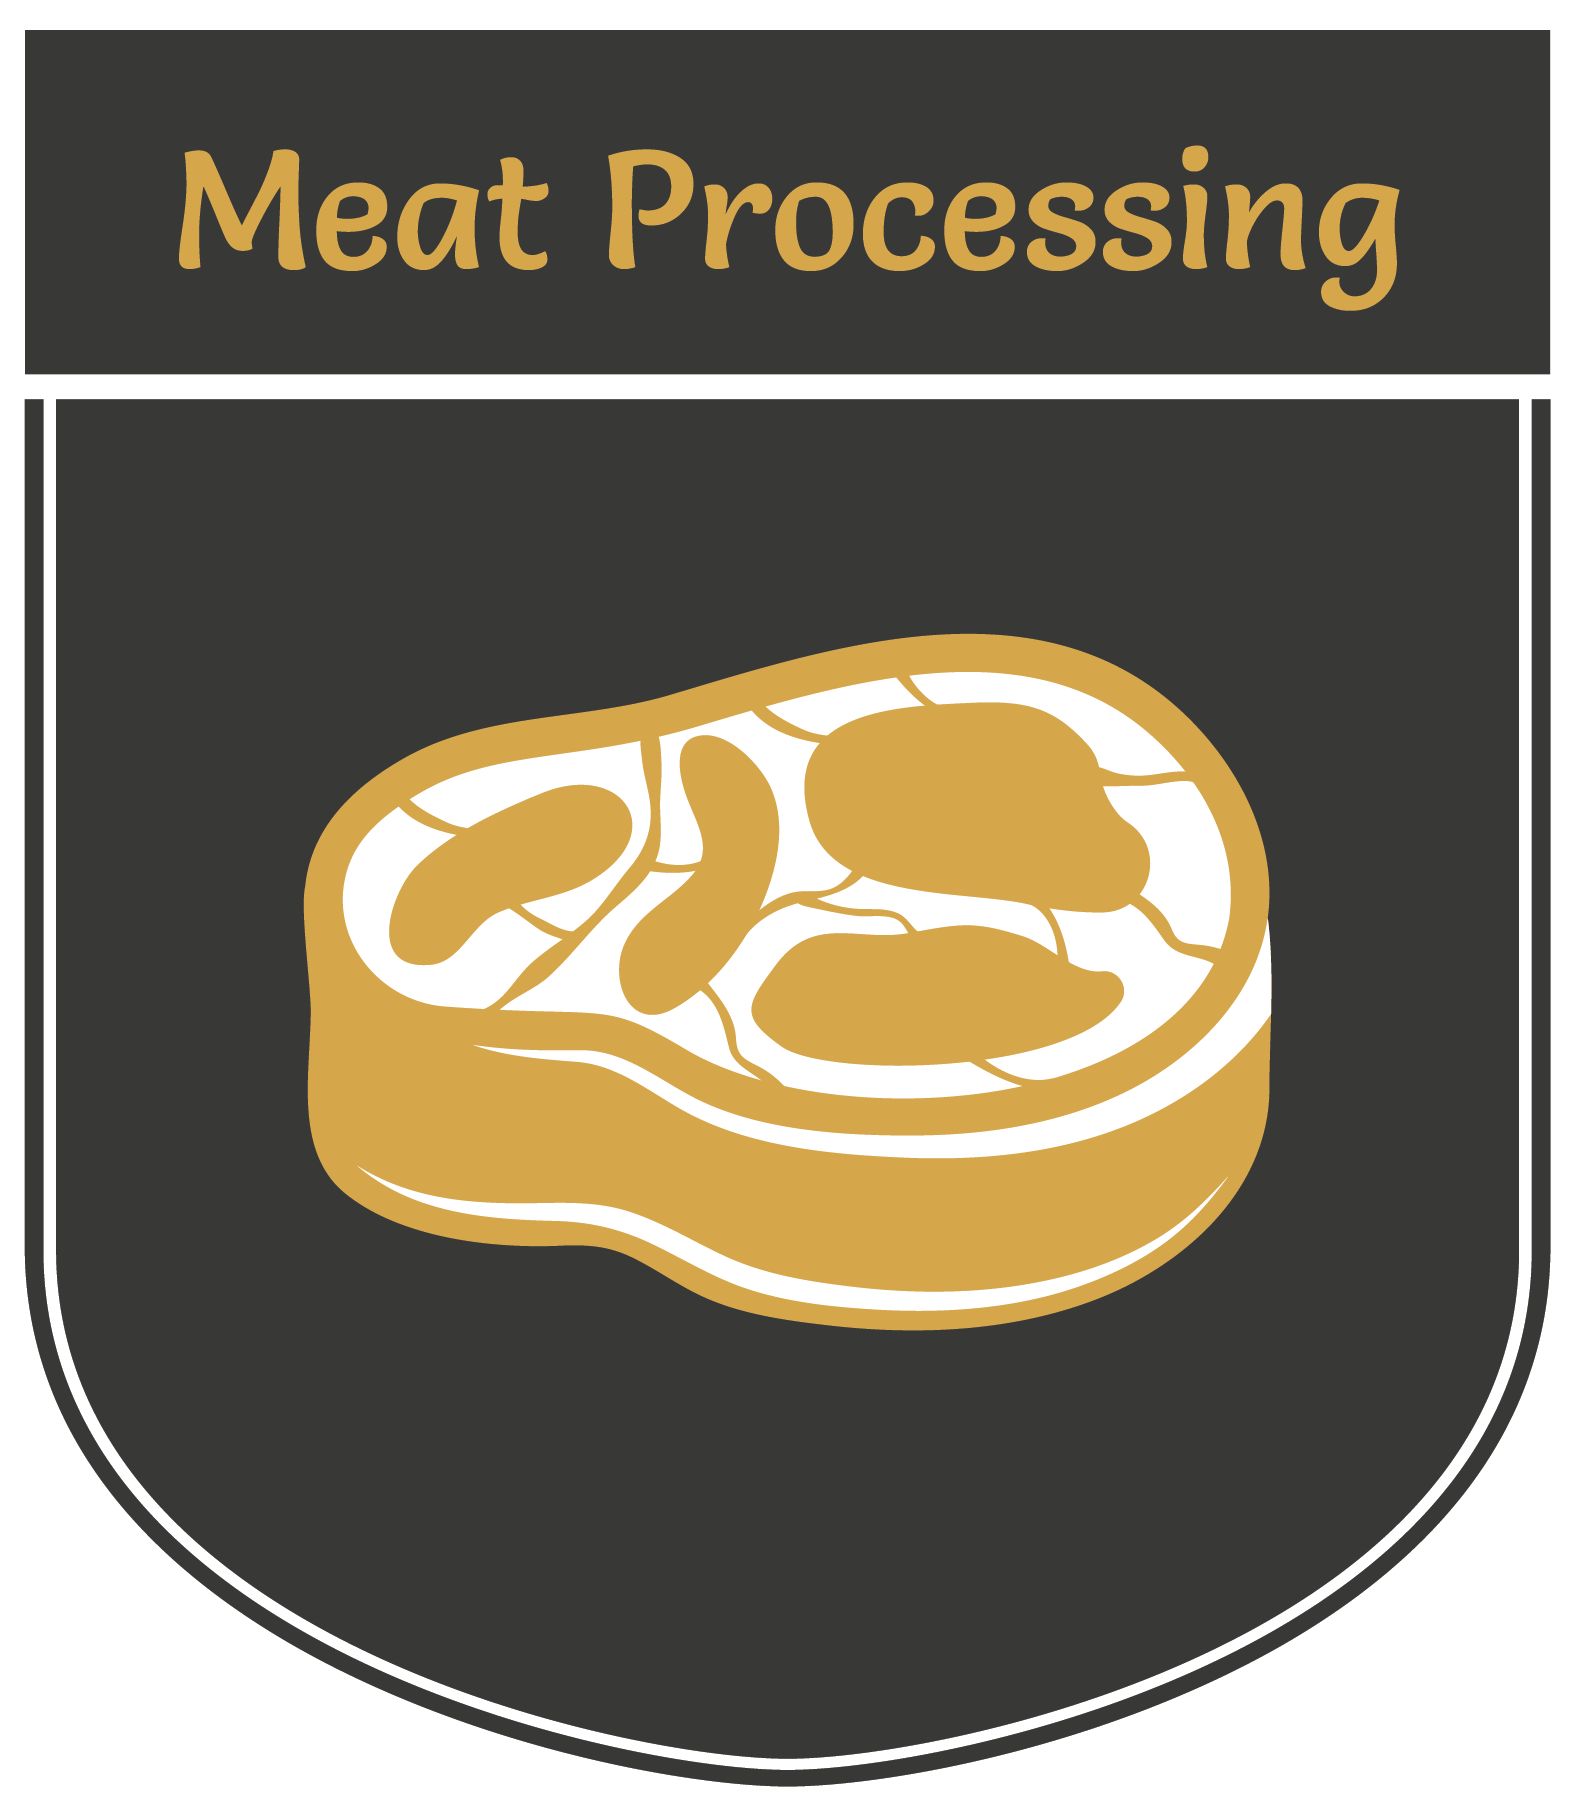 Vertical banner displaying an illustration of a steak | Meat Processing